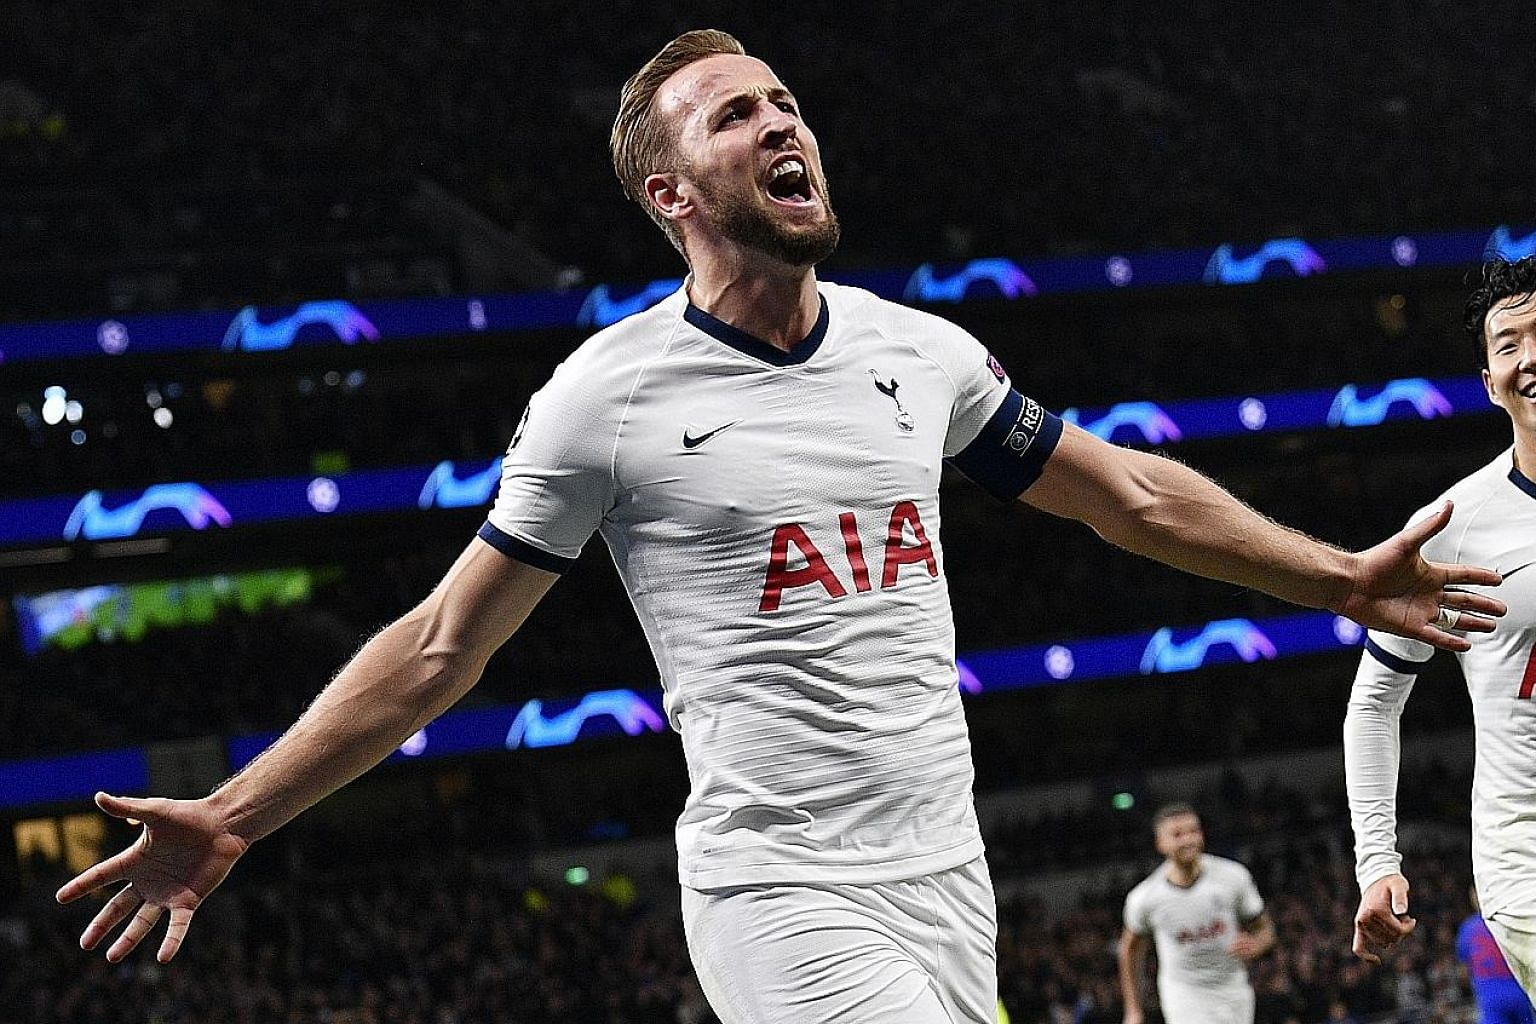 Tottenham striker Harry Kane has sparked talk about his future at the club after saying in an interview last month that he wants to win trophies sooner rather than later. PHOTO: EPA-EFE